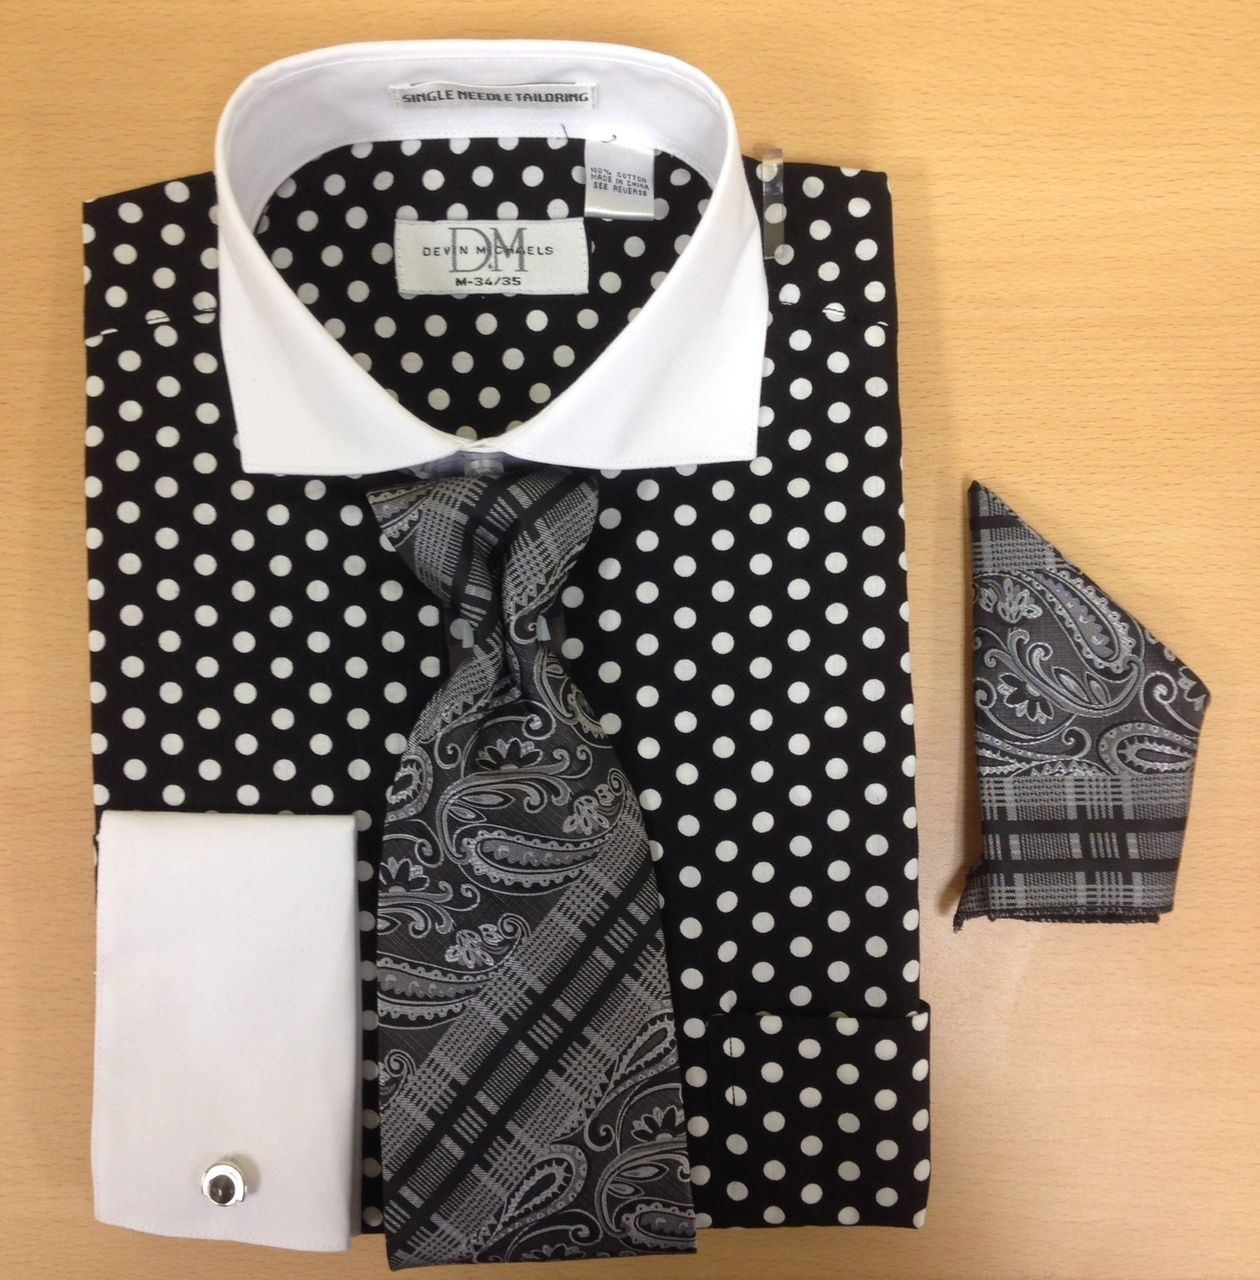 Men's Fashion Polka Dot Pattern Cufflink Dress Shirt Set - Black and White